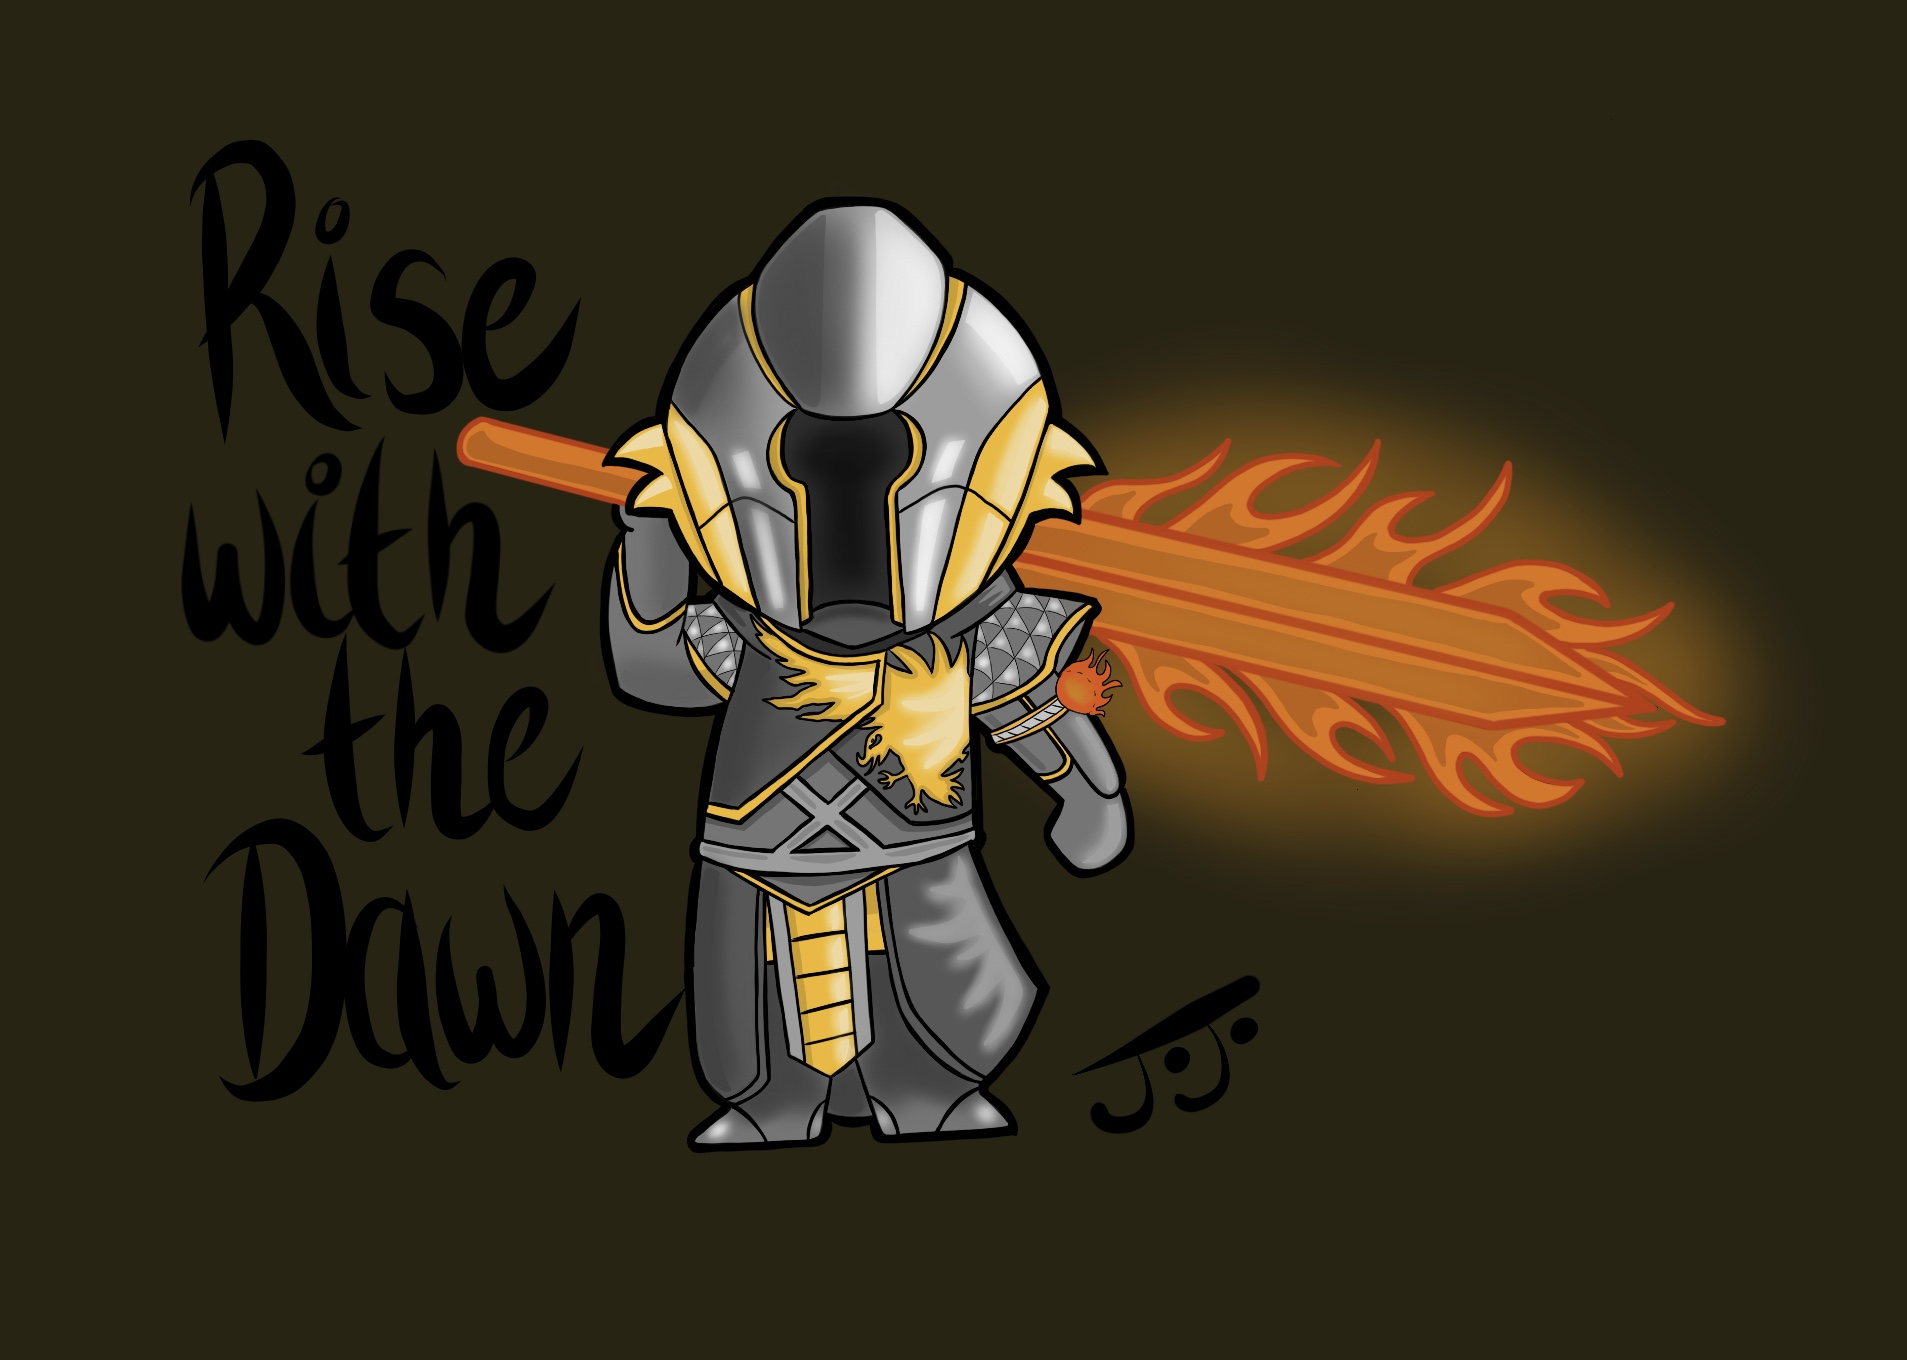 Rise with the Dawn